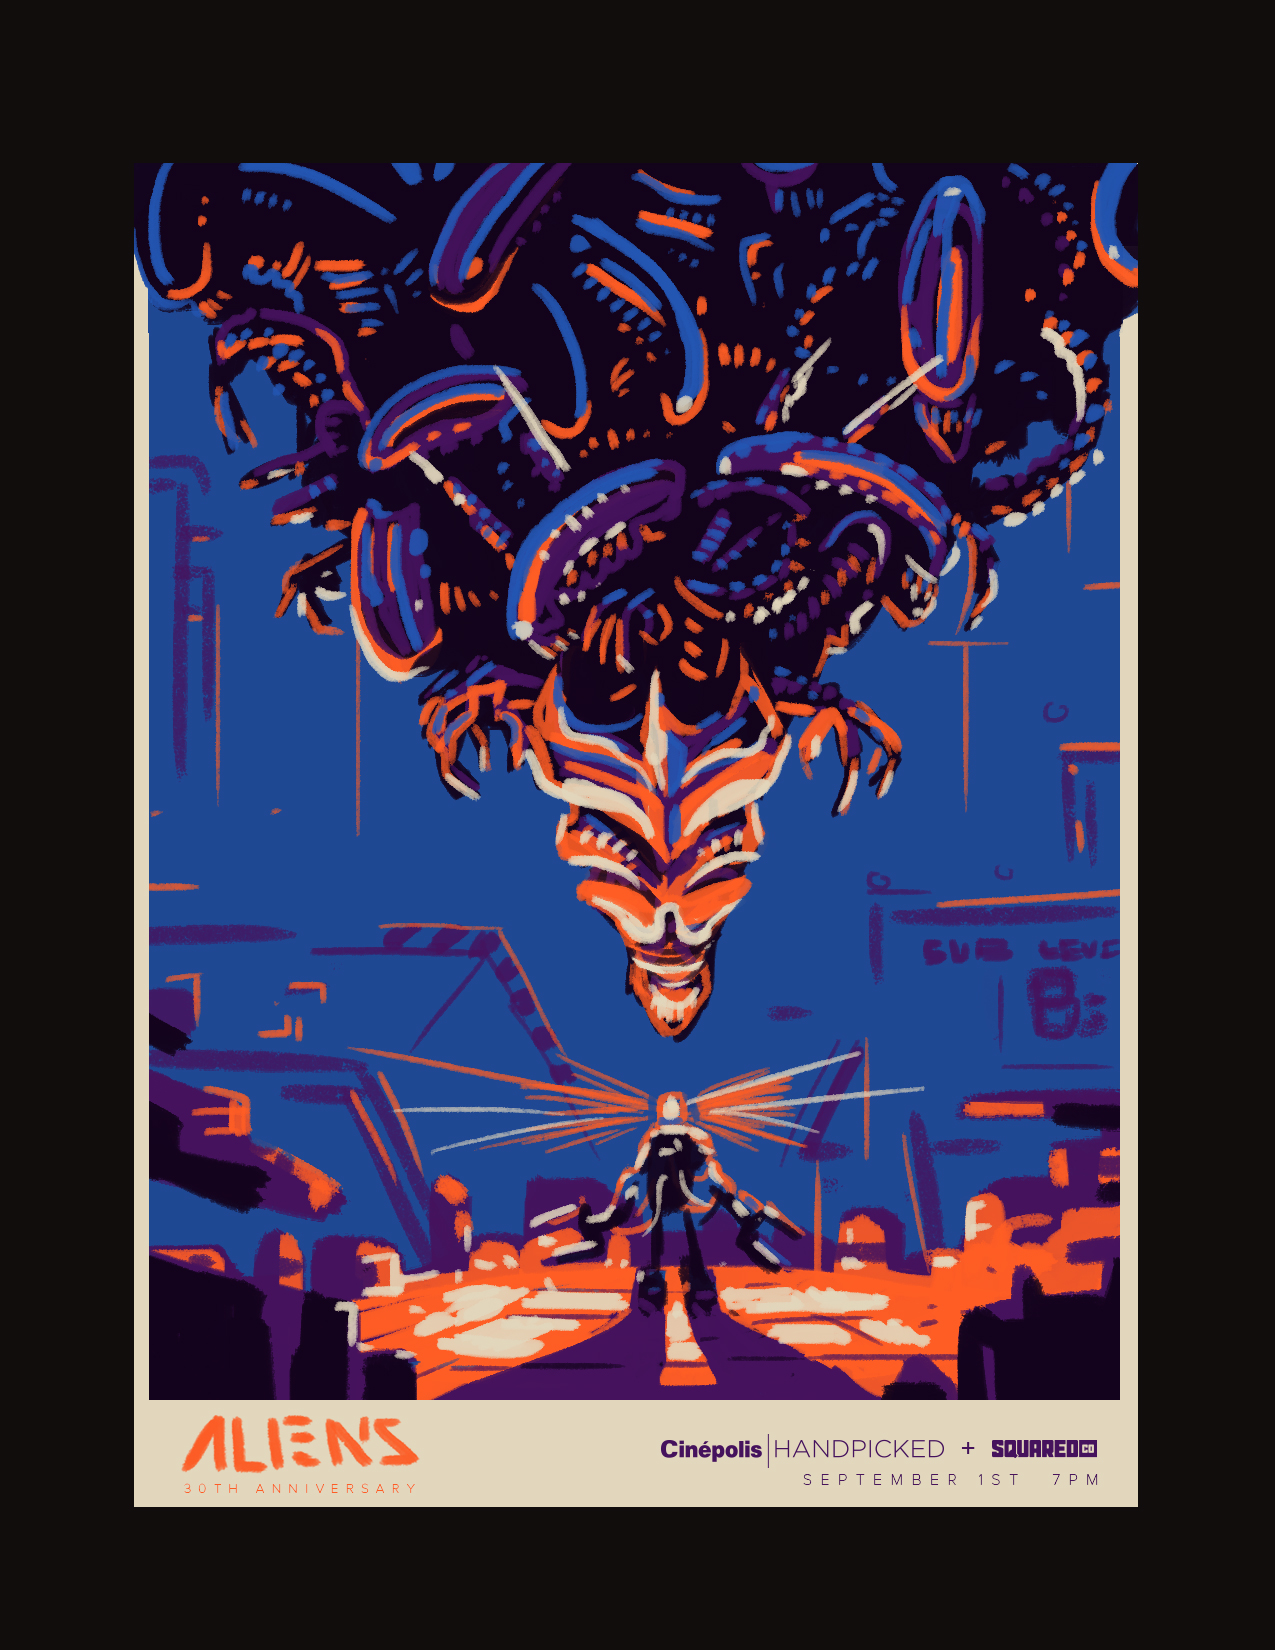 ALIENS_Roughs-01-ColorBlock-E.jpg